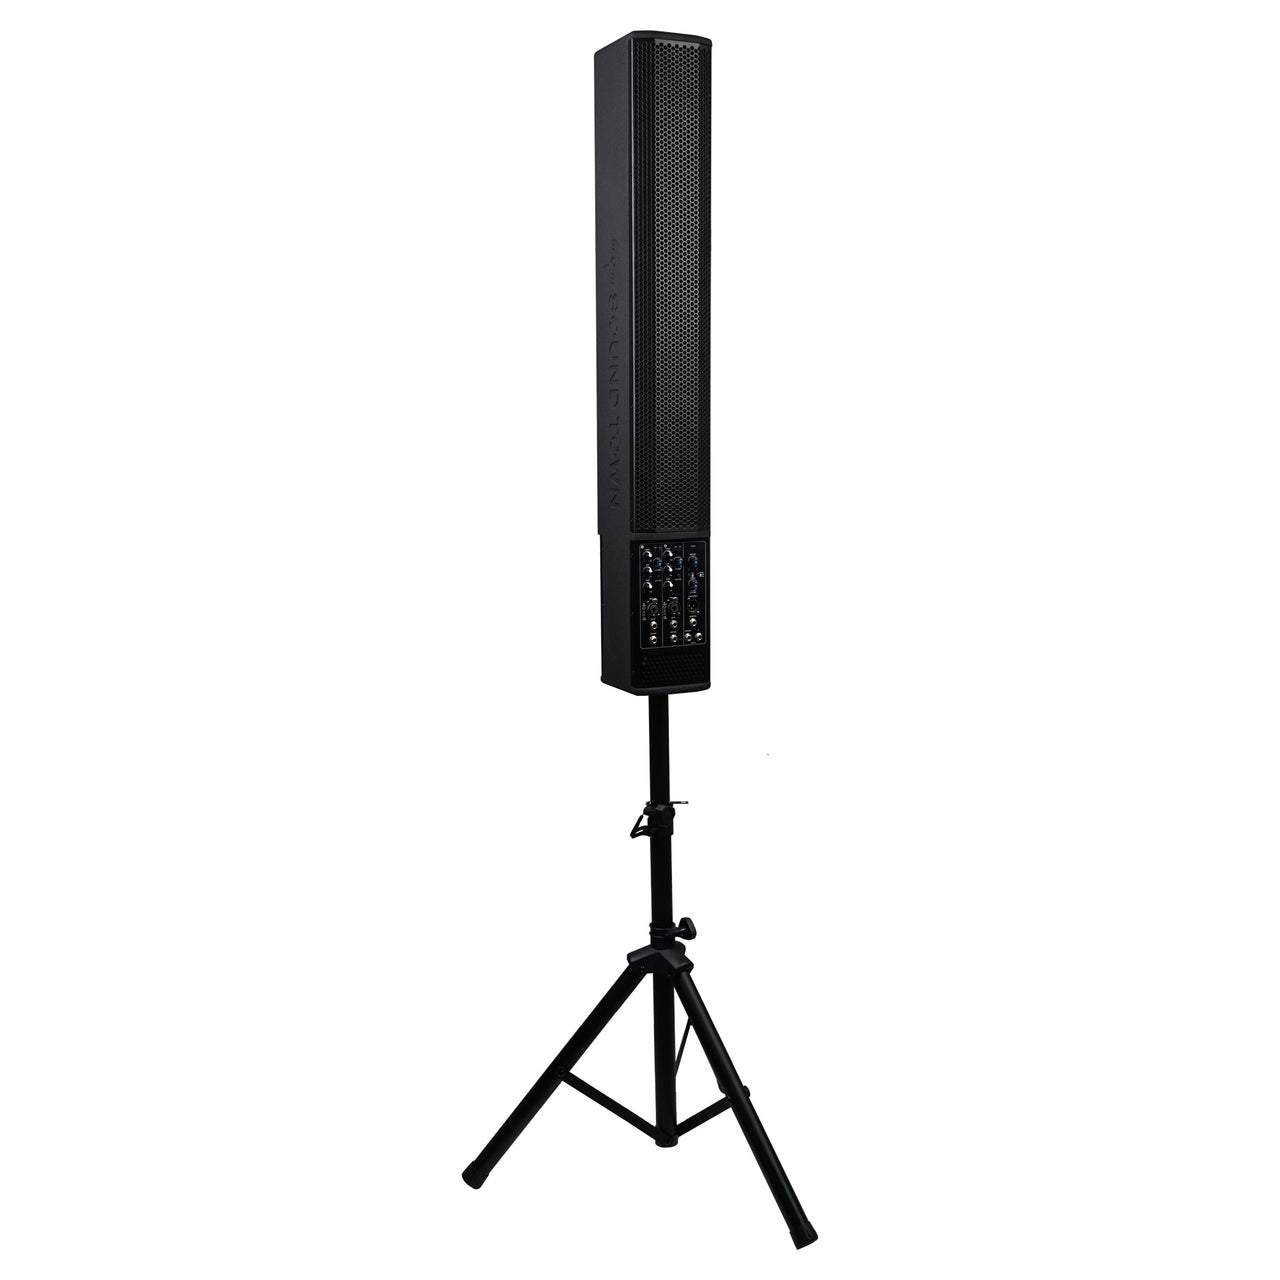 CARPO-V5PWS CARPO Series Powered Column Speaker Line Array System with Stand - Right Panel